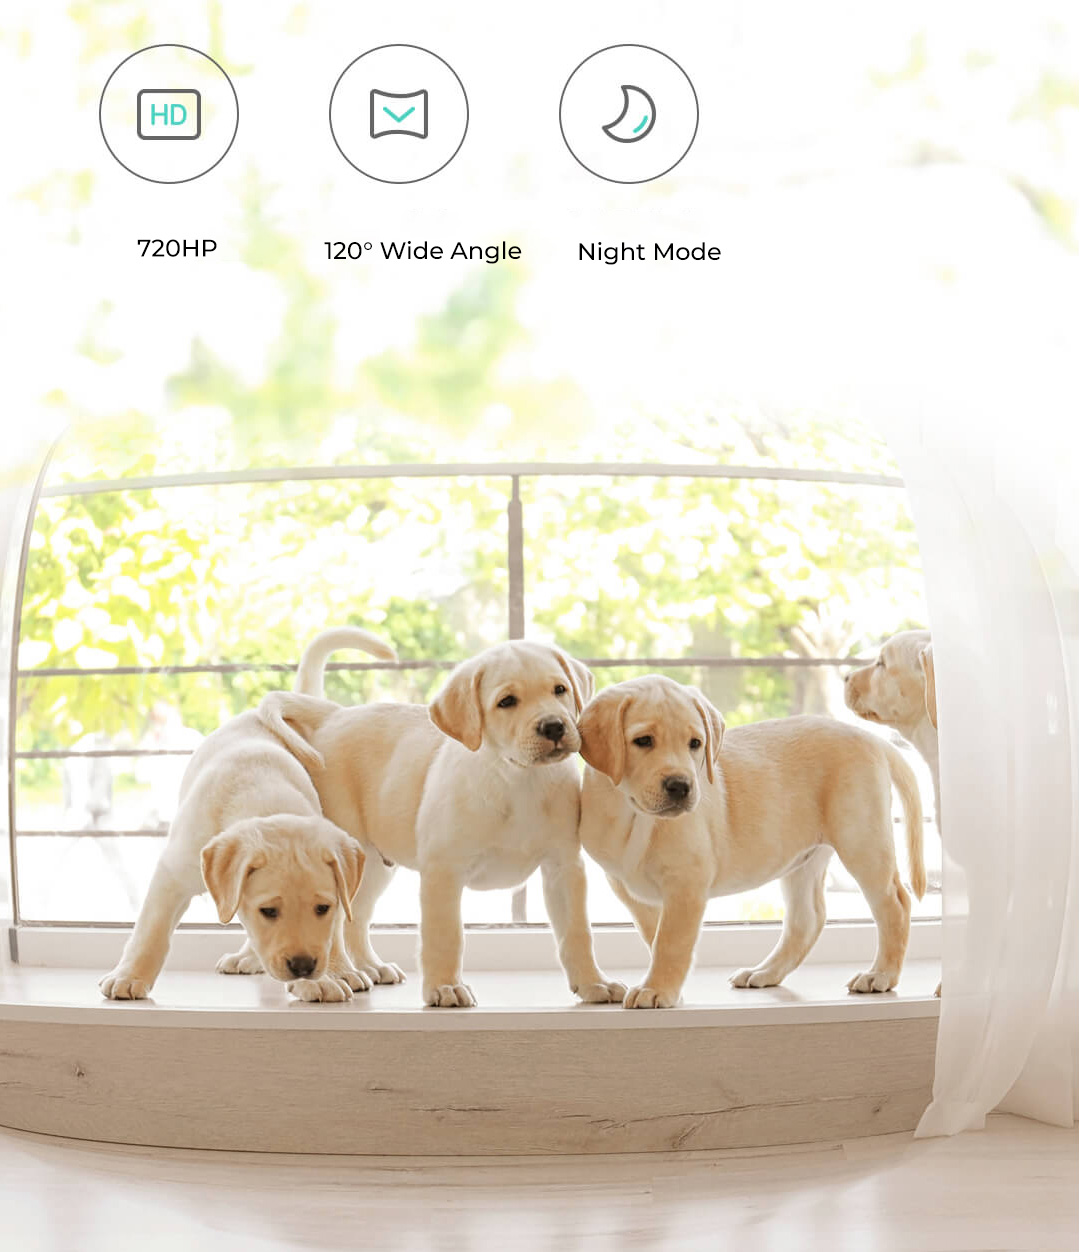 Xiaomi Petoneer Automatic Pet Feeder with Webcam